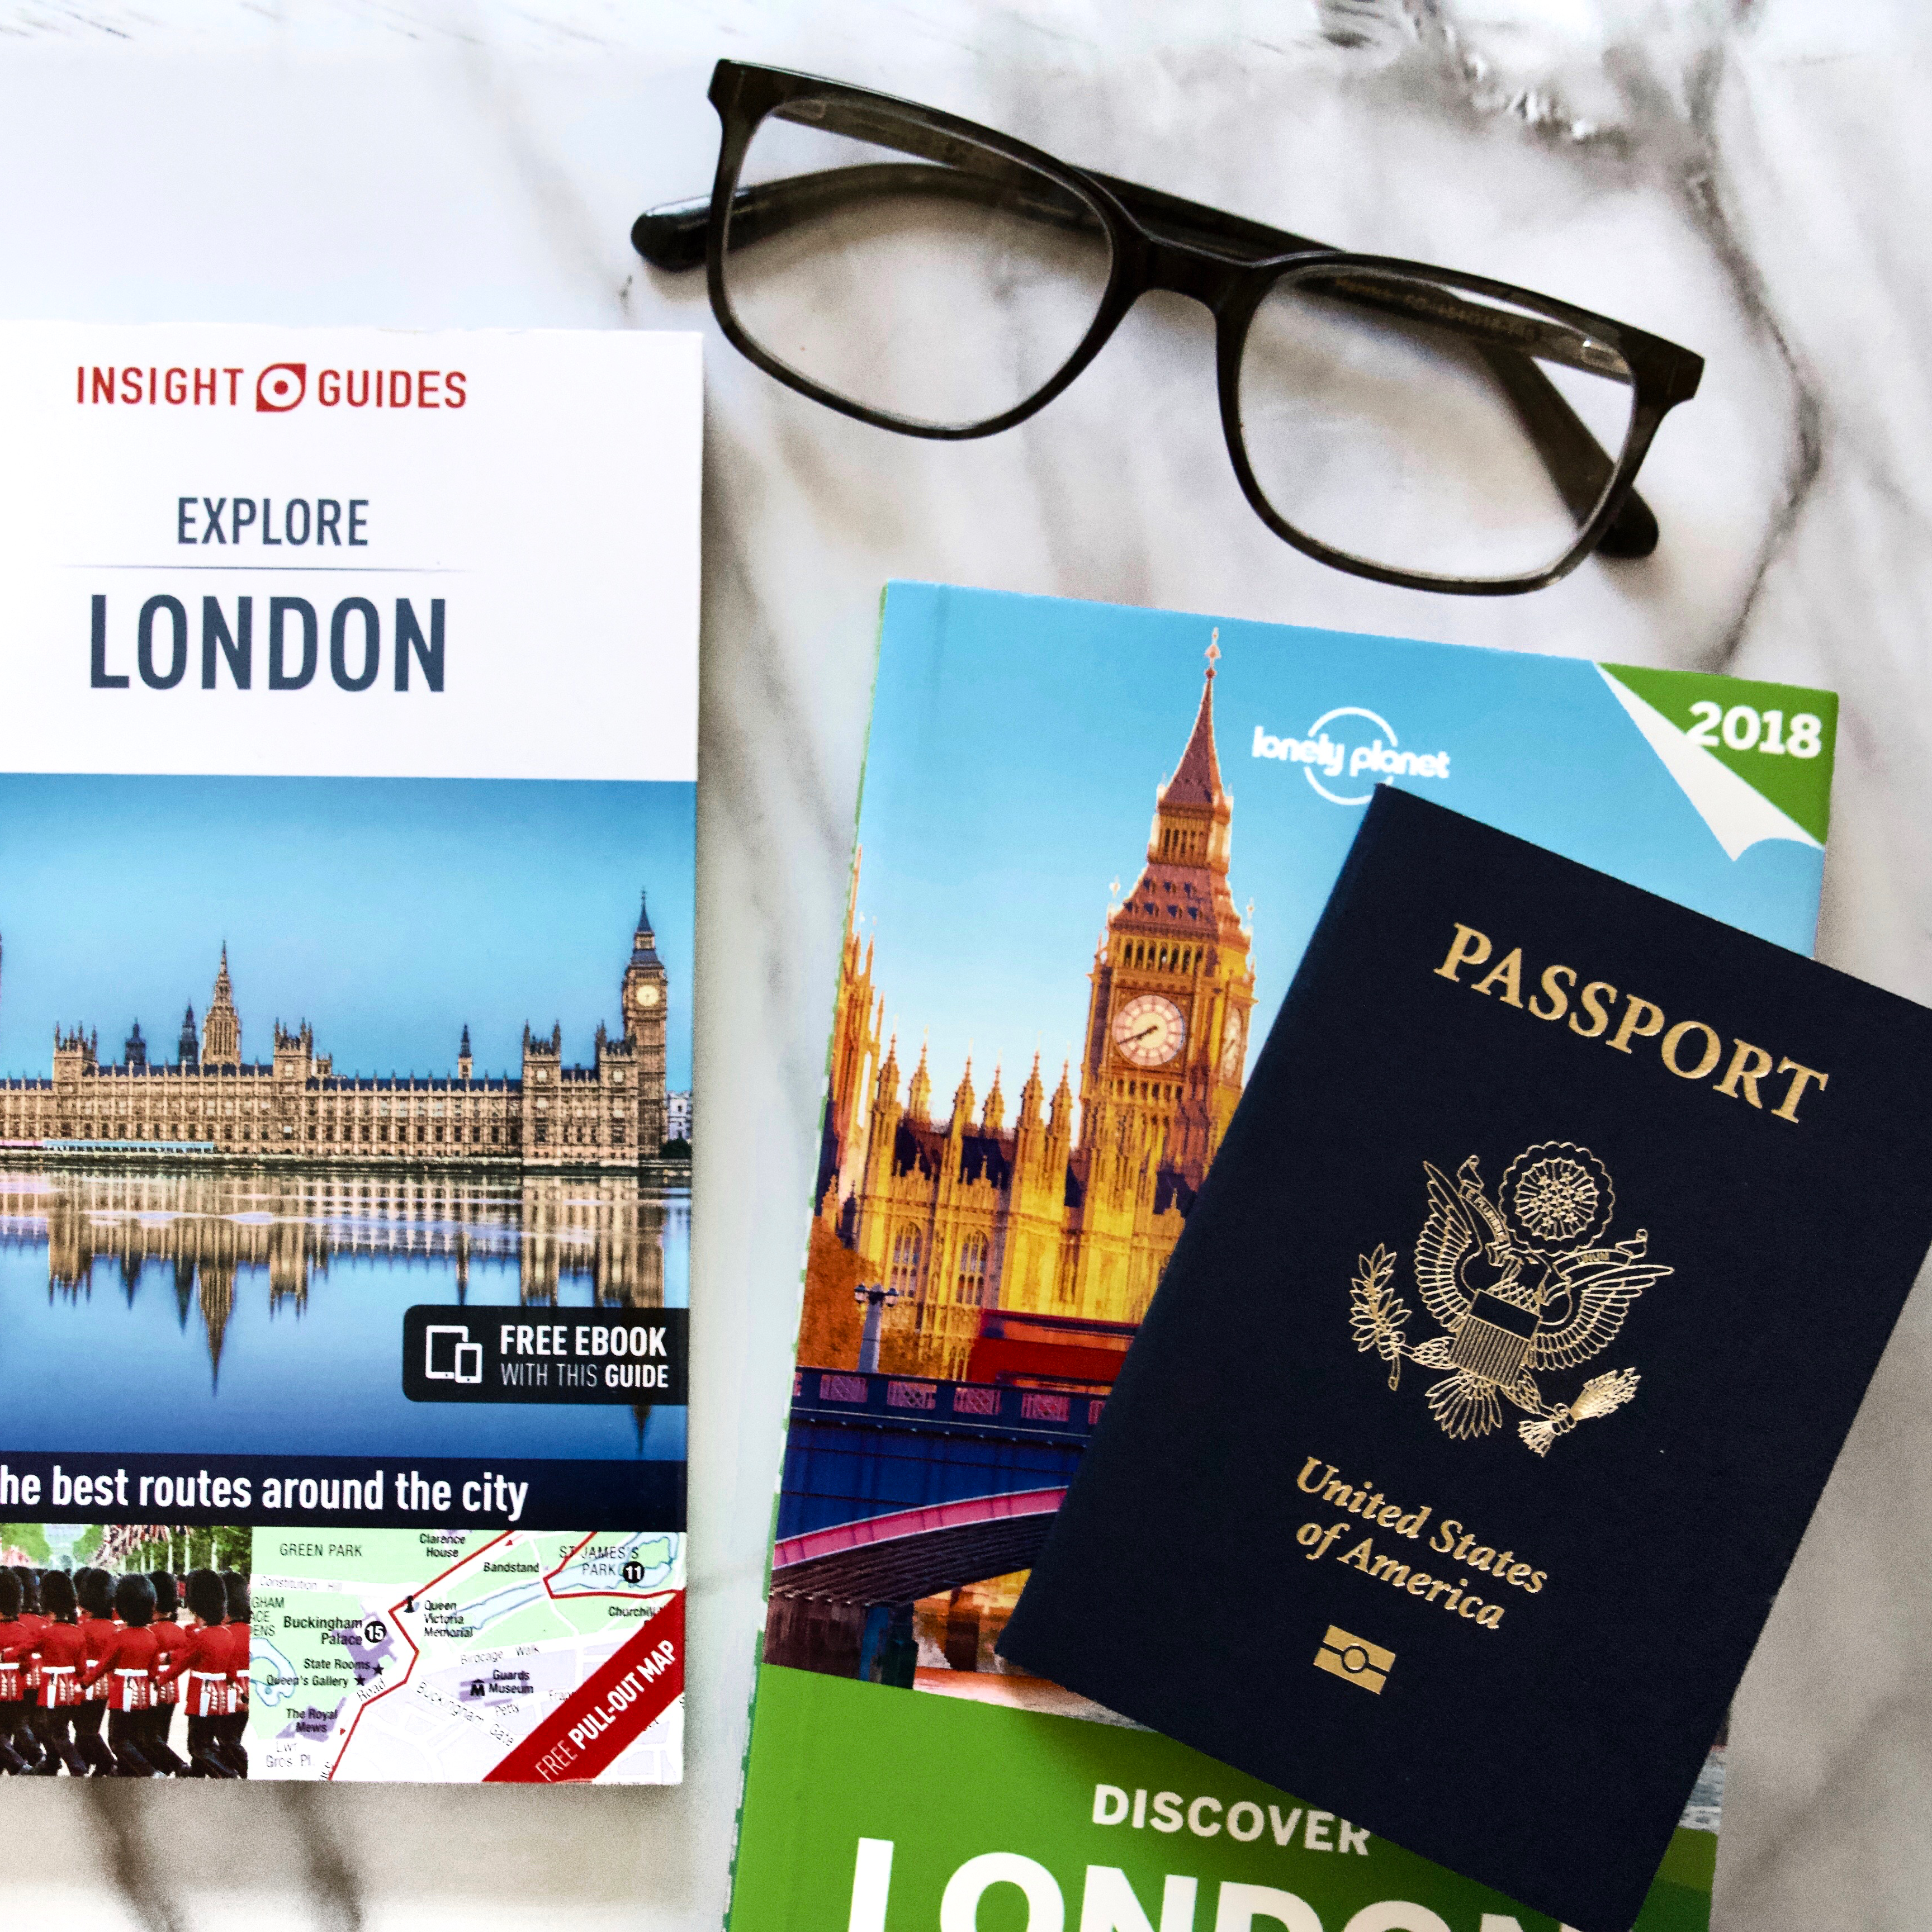 CAPAStudyAbroad_London_Spring2018_From Kelly Allen - Passport and Guide_Square.png